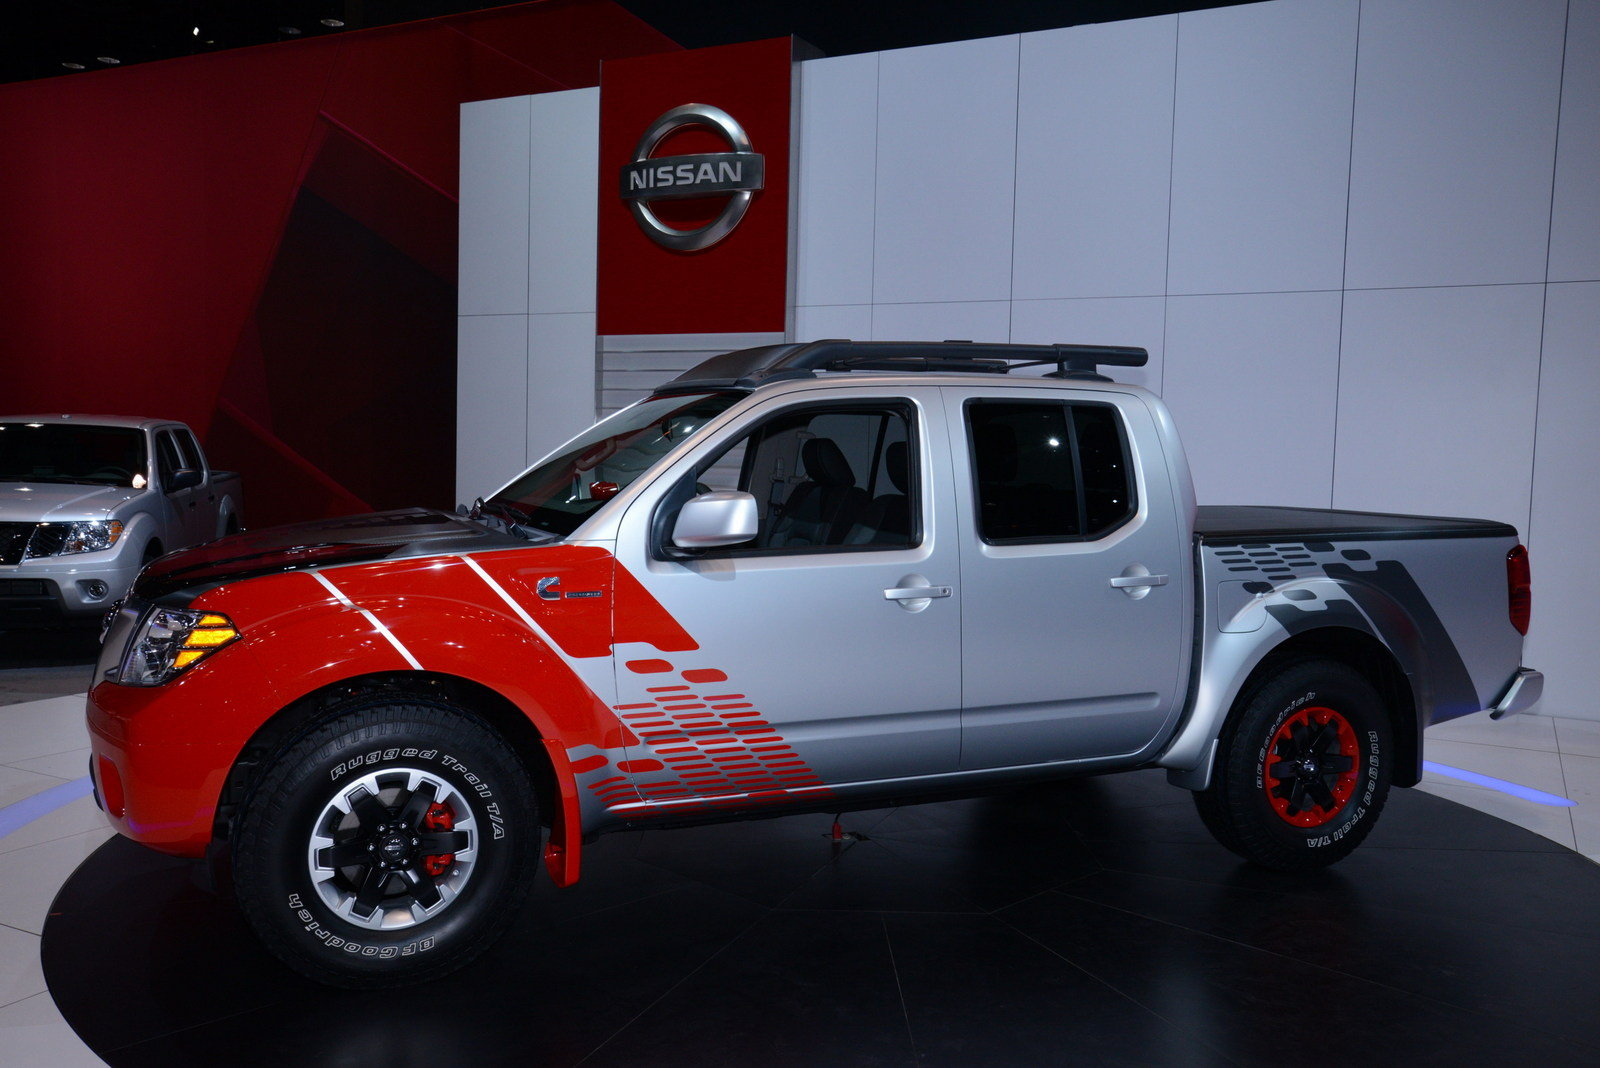 2015 nissan frontier diesel runner powered by cummins picture 541184 car review top speed. Black Bedroom Furniture Sets. Home Design Ideas